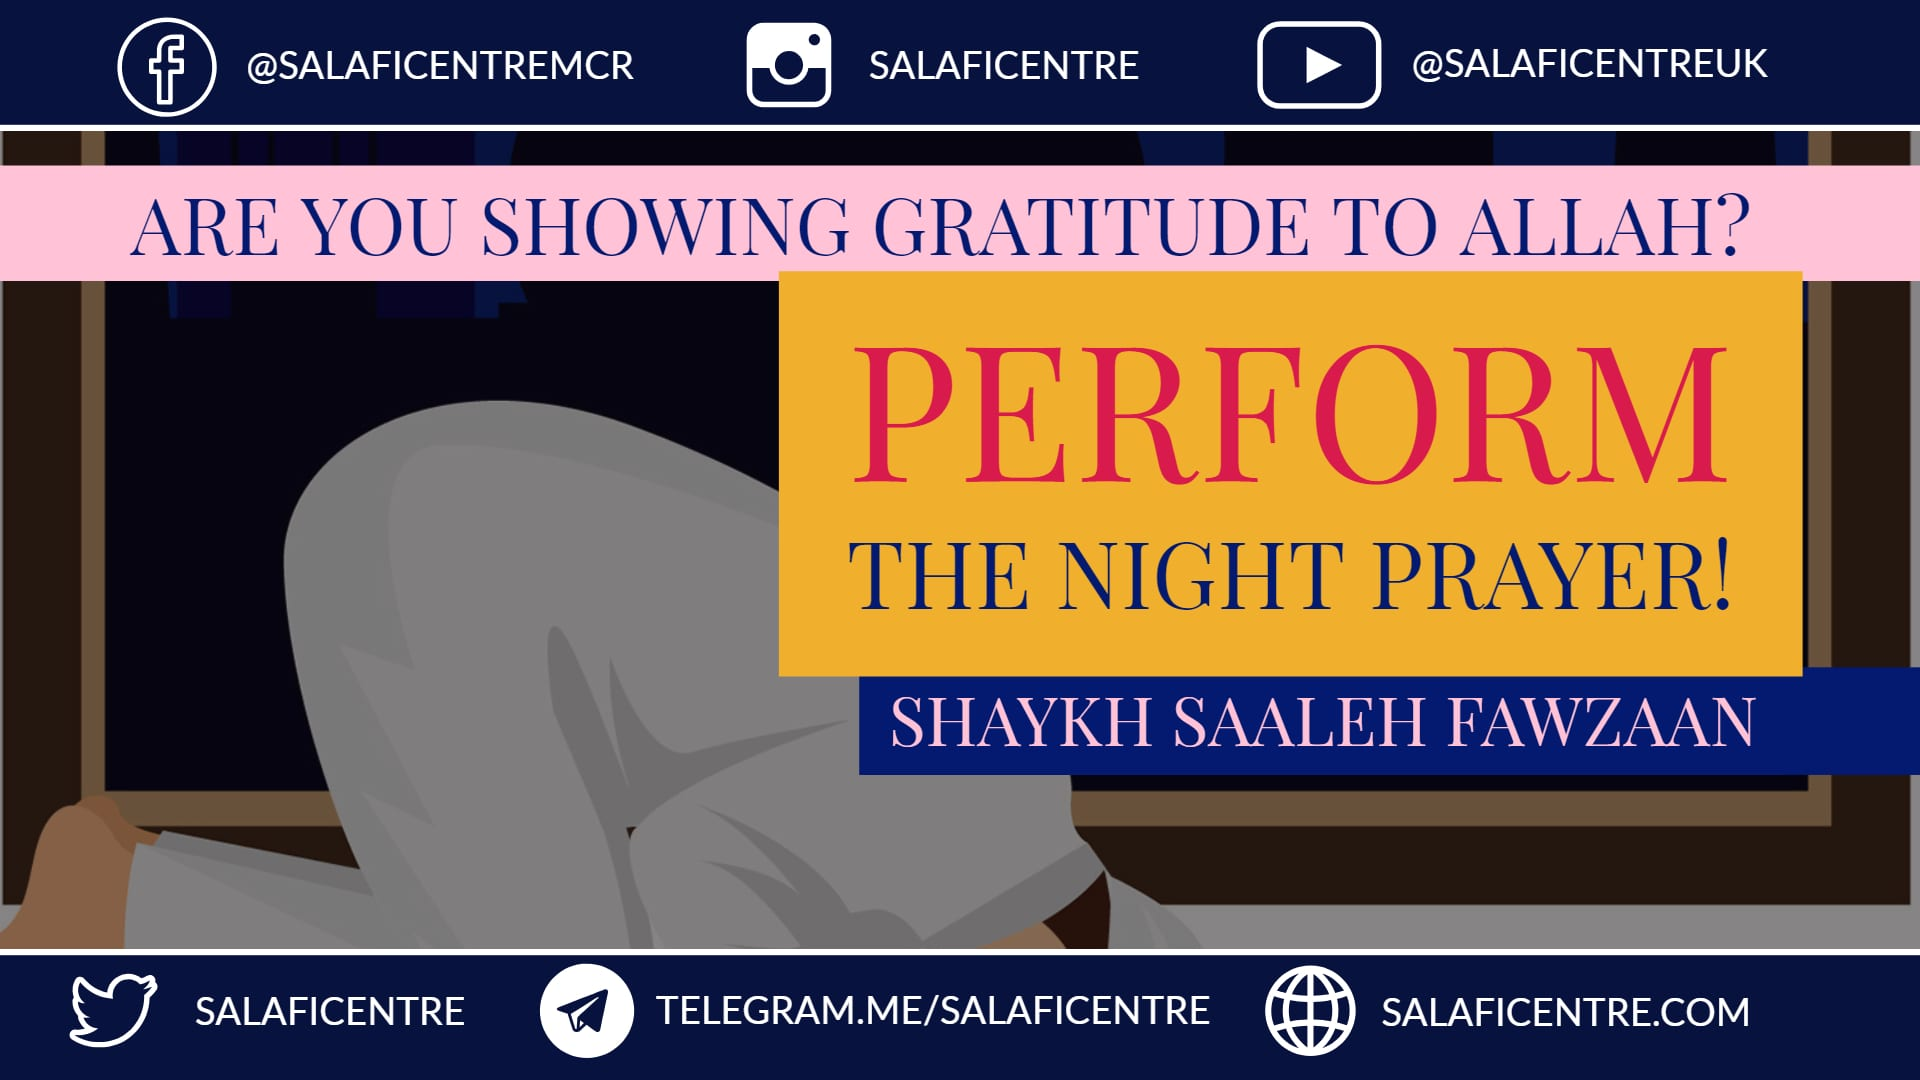 VIDEO – Show Your Gratitude To Allah & Perform The Night Prayer – Shaykh Fawzaan